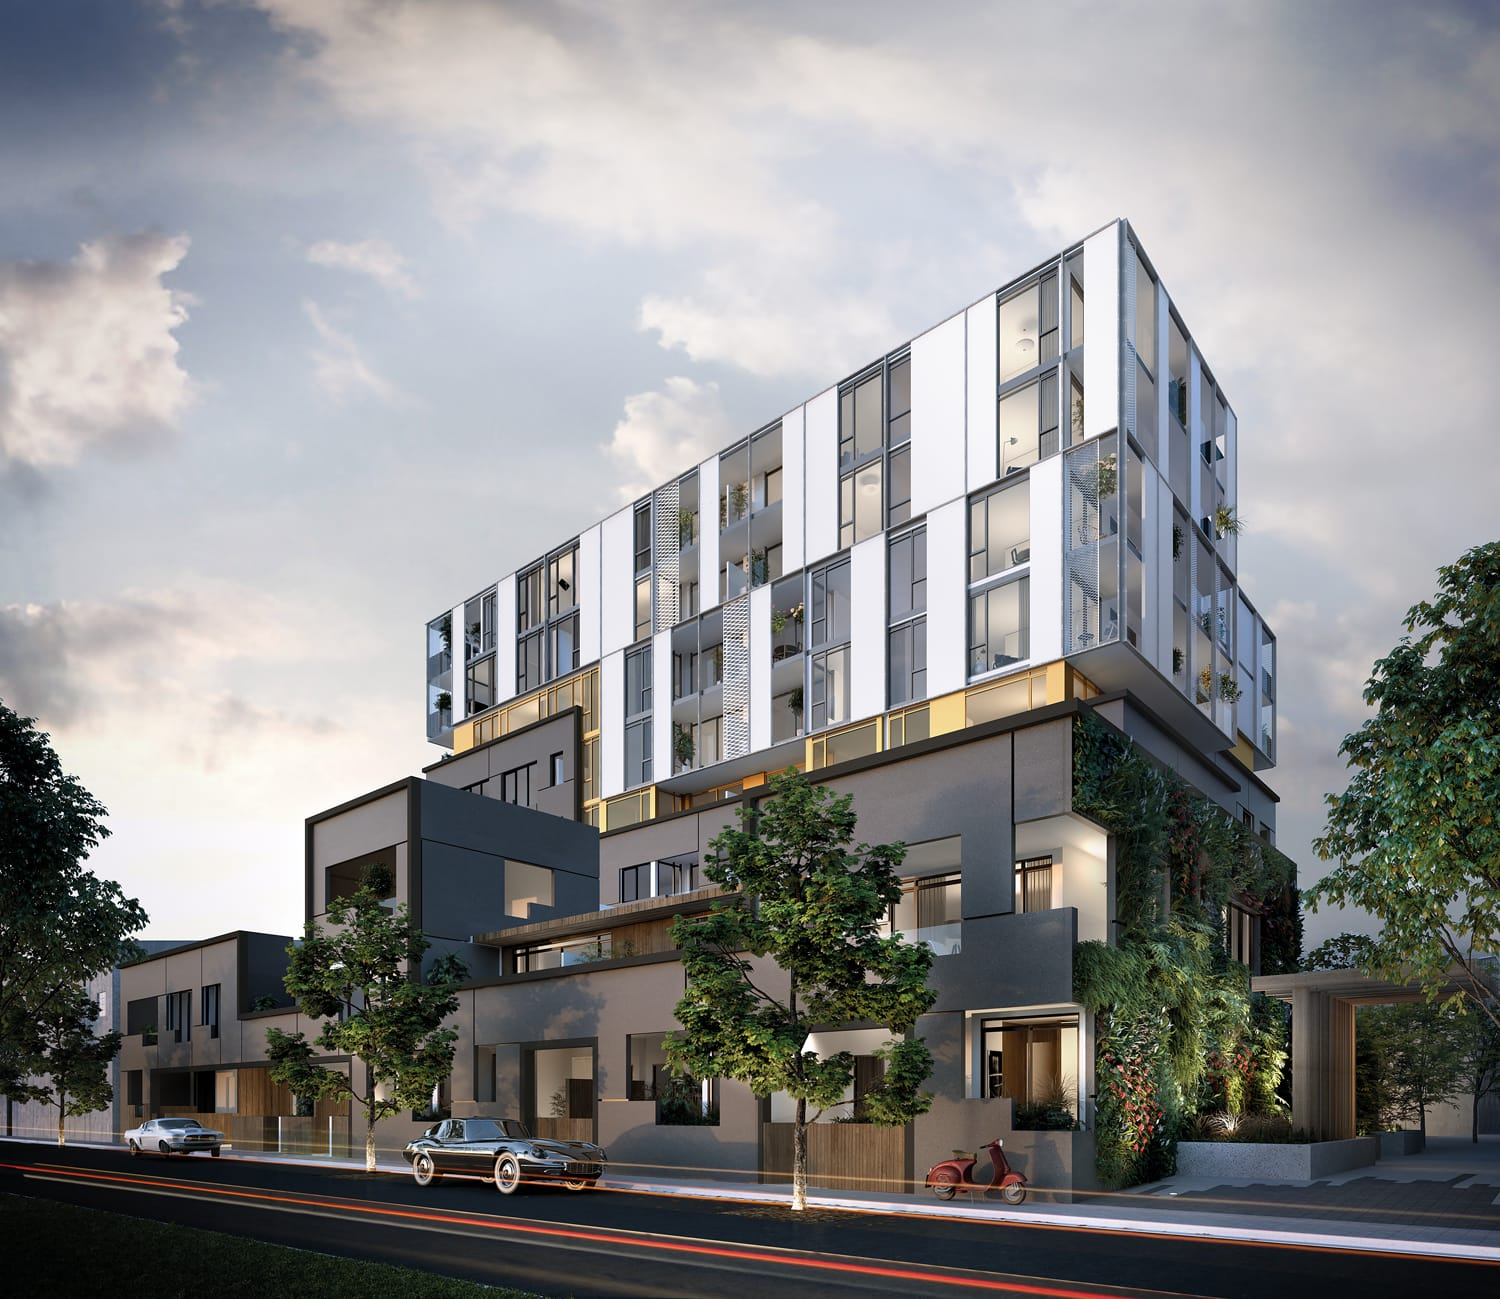 Cht Apartments: Apartments • CHT Architects